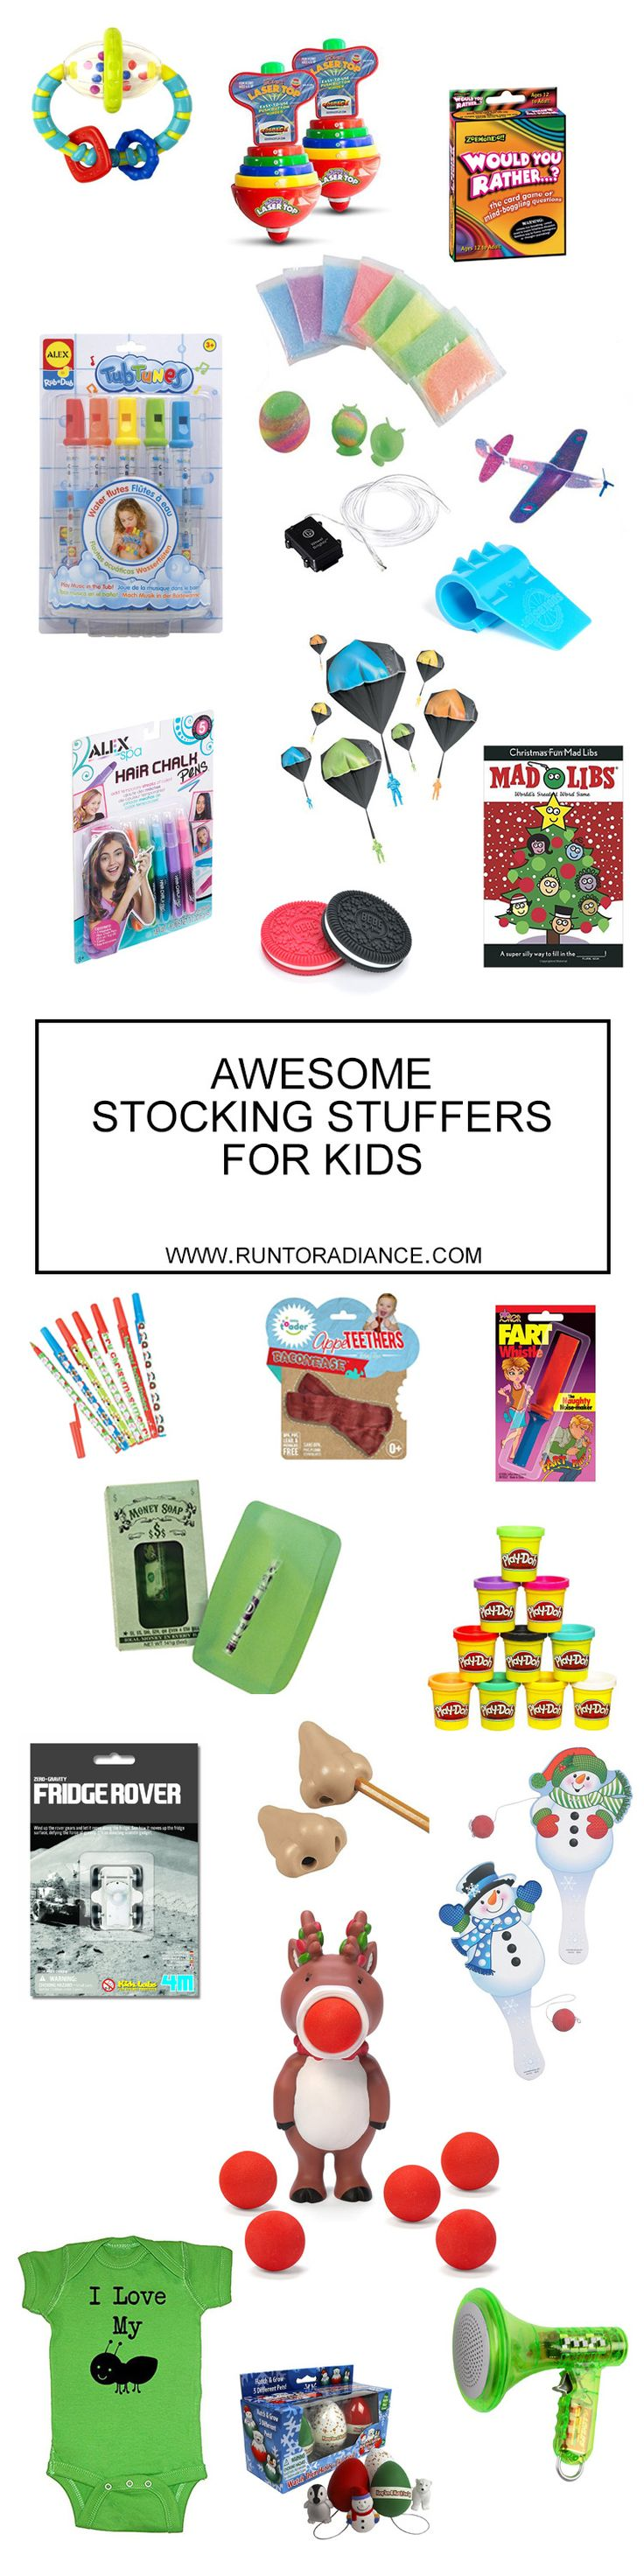 These stocking stuffer ideas for kids are so cute! I love that all these stocking stuffers for kids are available on Amazon Prime - hooray for shopping while drinking wine in PJs!